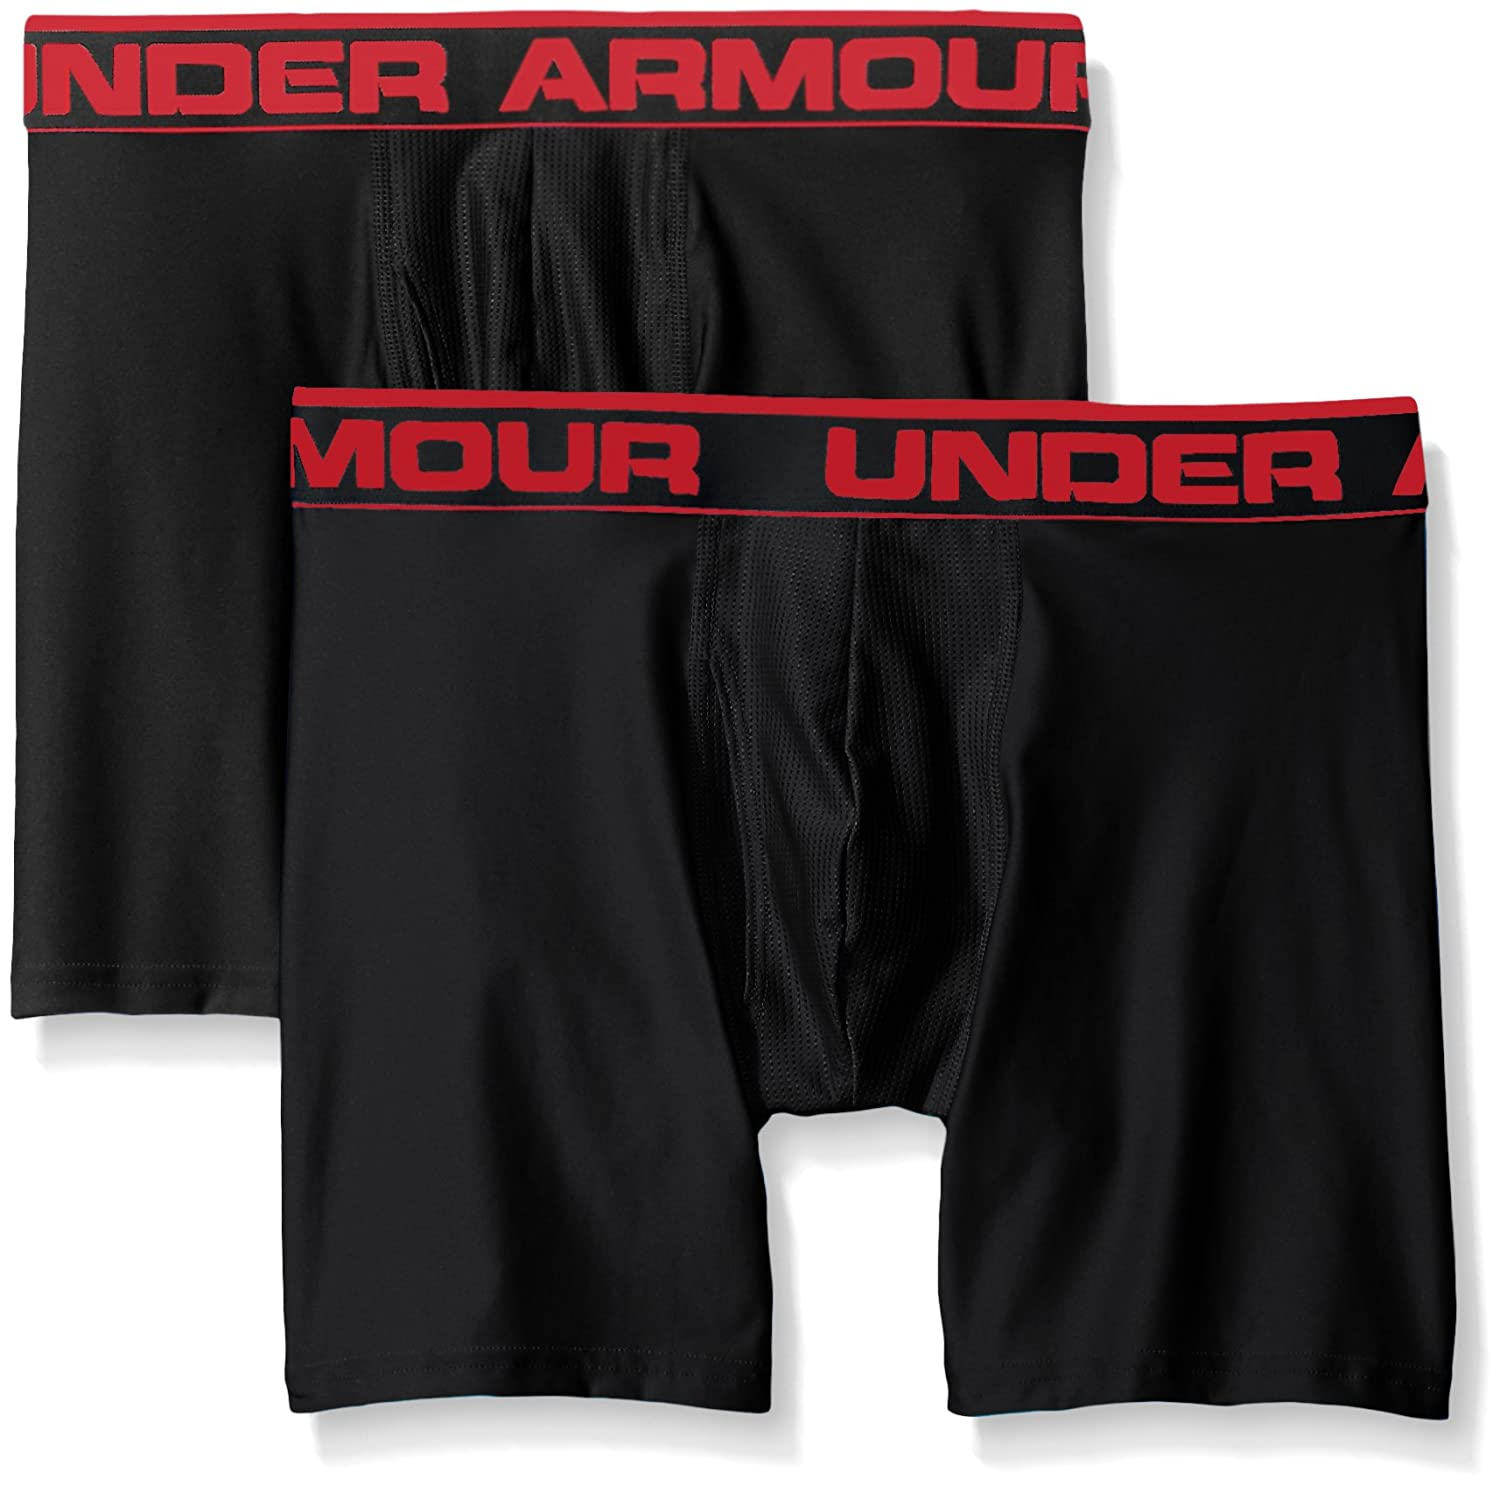 Under Armour Men Original Series Boxer Jock (Pack of 2)